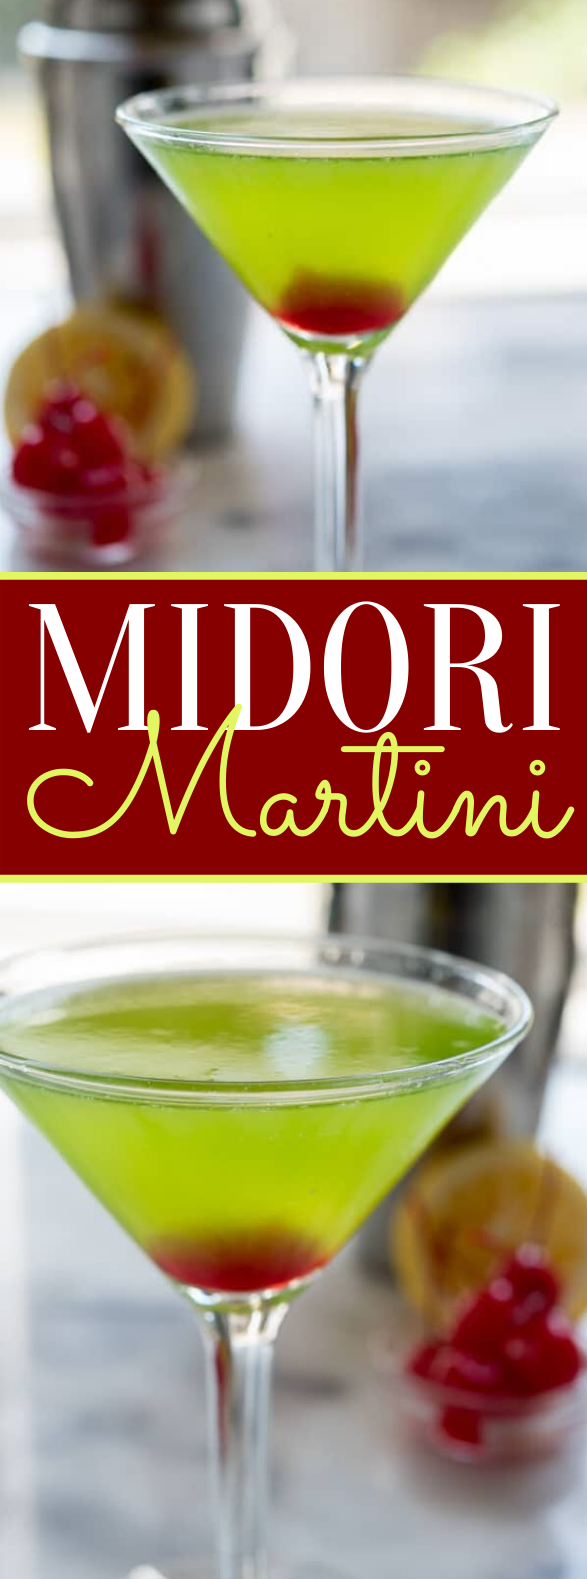 Midori Martini #drinks #cocktails #martini #mixeddrink #partydrink